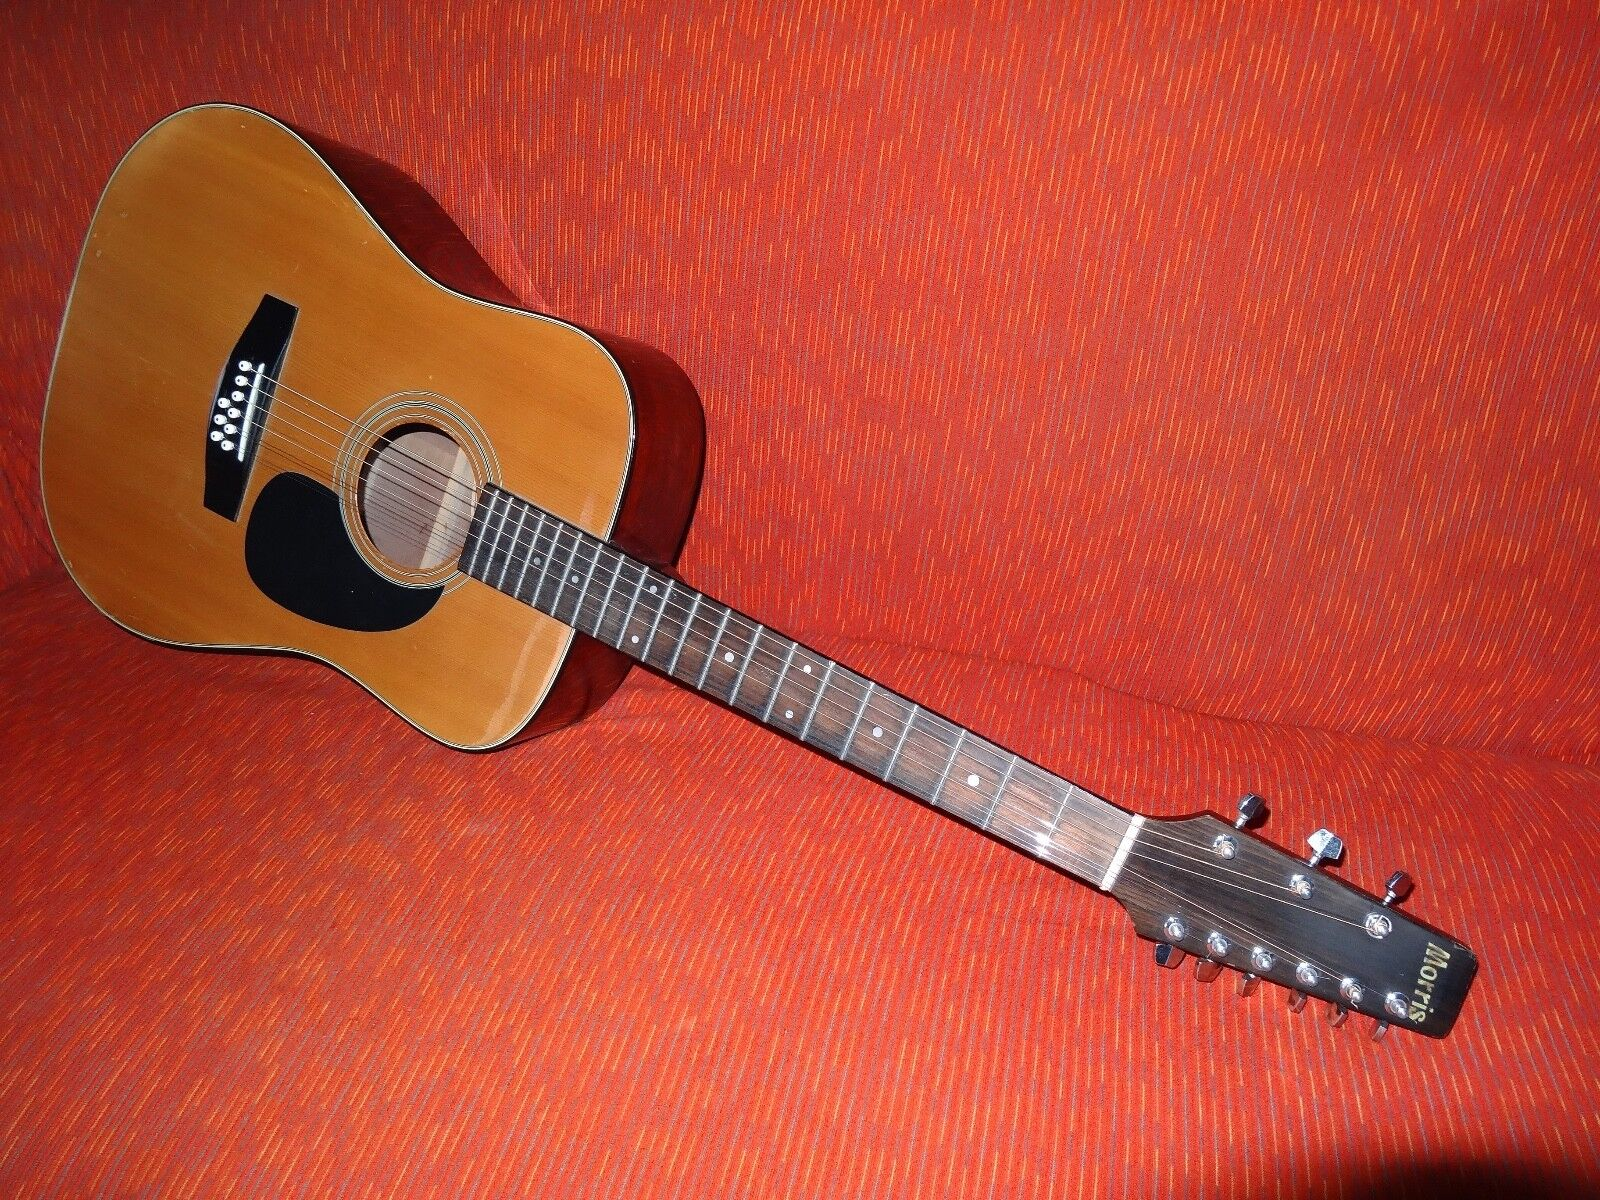 Morris acoustic guitar BW618, nine string,extremely rare, vintage